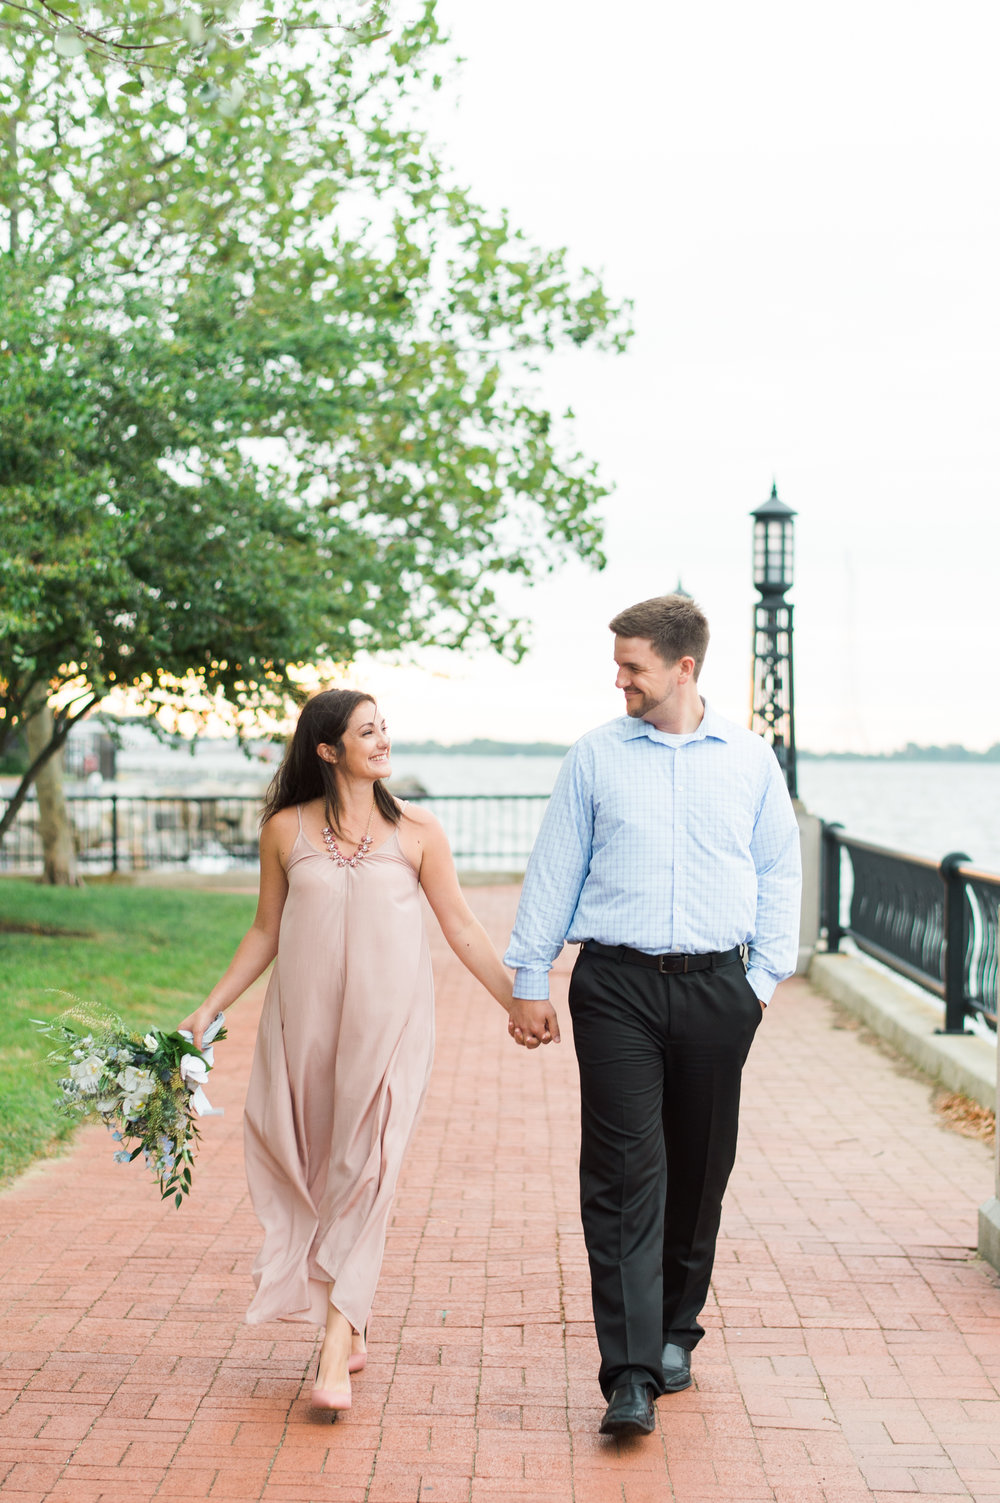 The happy couple along the waterfront in Annapolis. A sneak peak before their walk down the aisle.